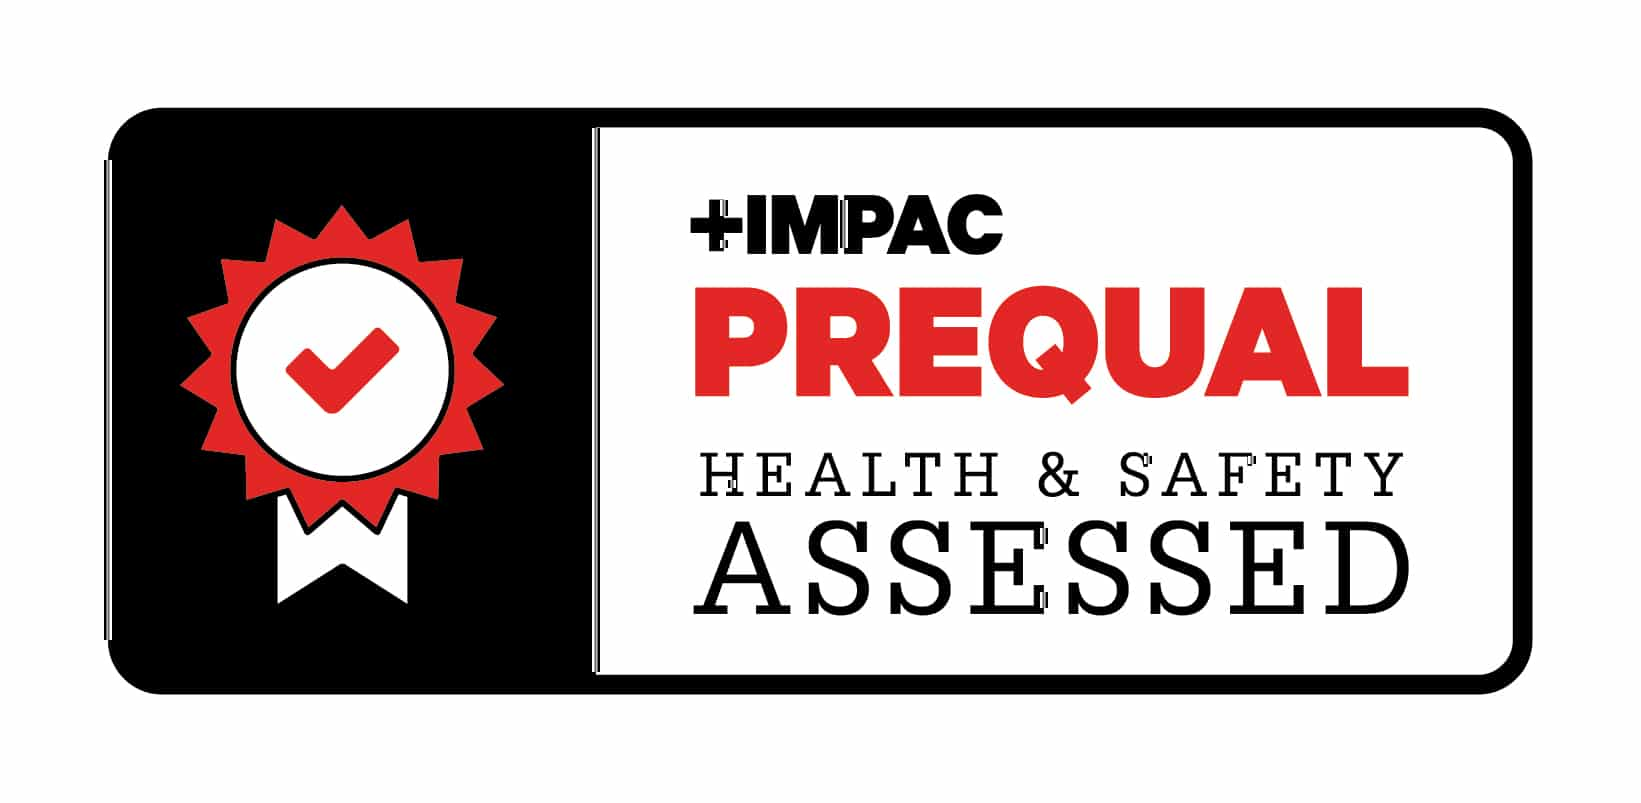 +IMPAC Prequal Health & Safety ASsessed